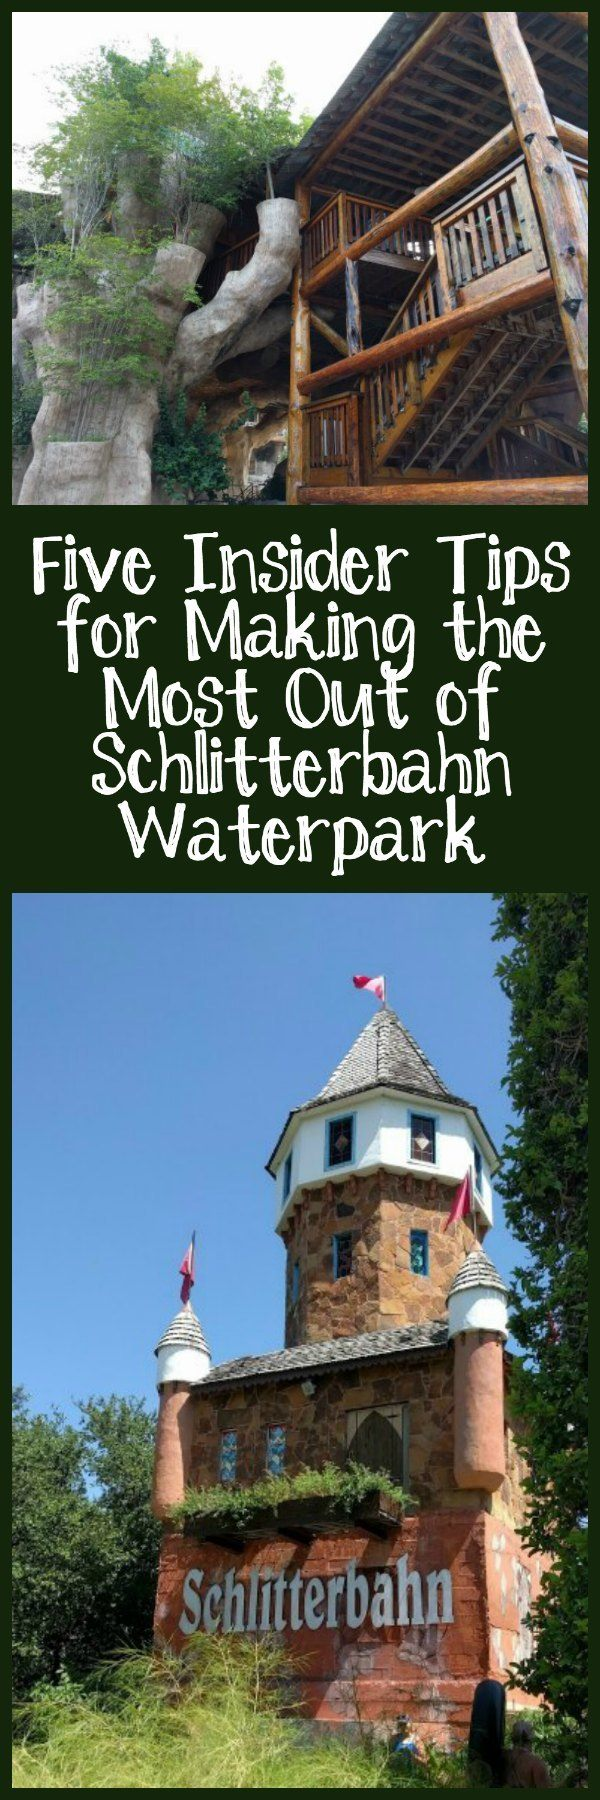 Five Insider Tips for Making the Most Out of Schlitterbahn Waterpark